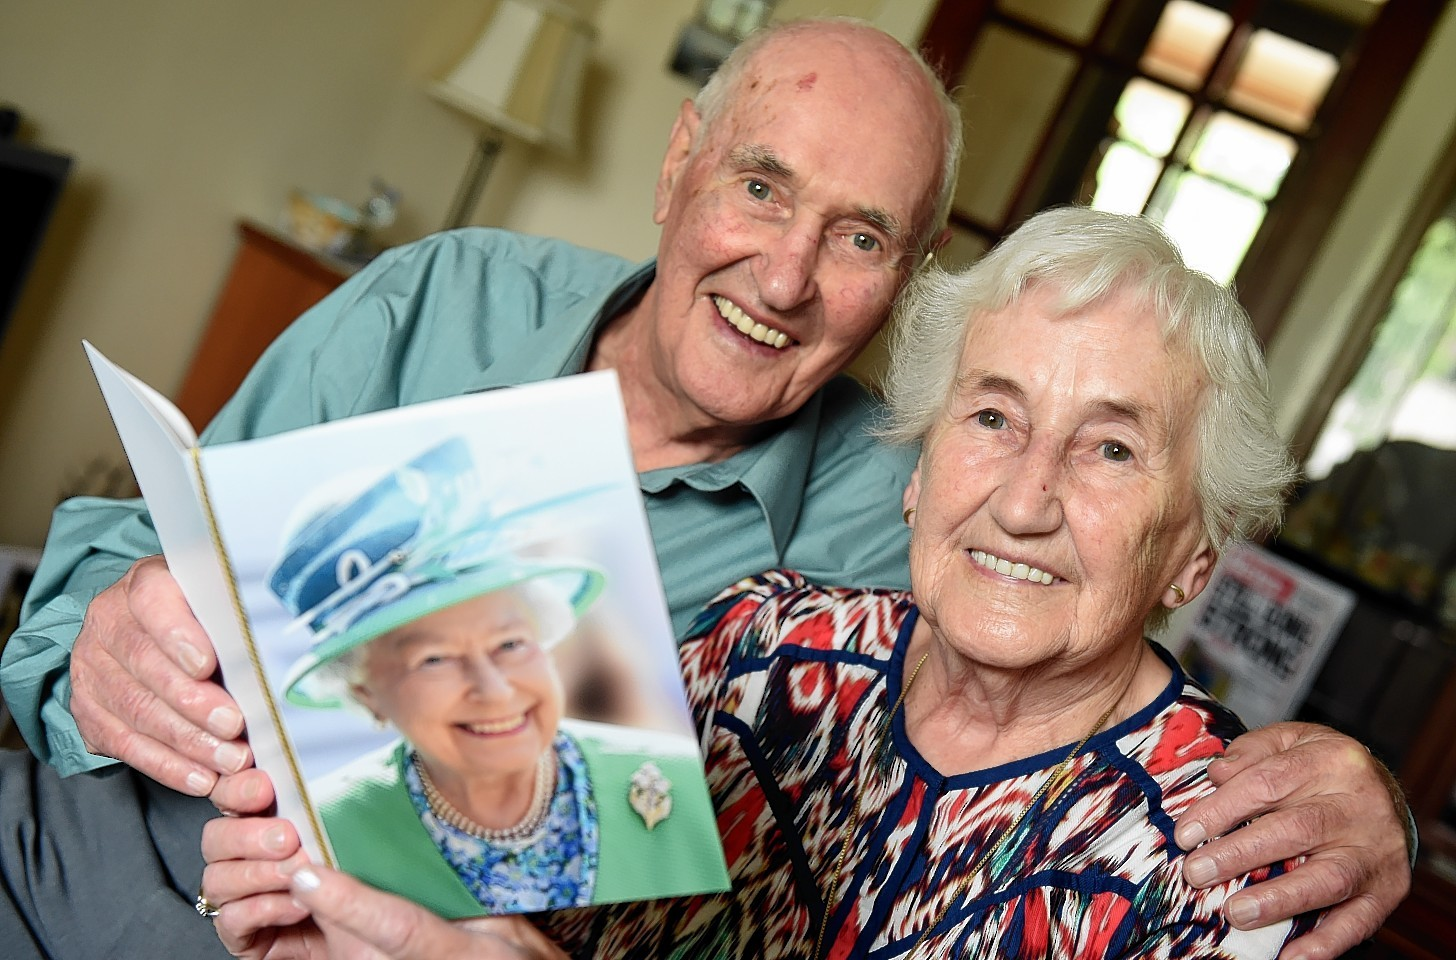 Bill and Mary Adams of Pittodrie Place, Aberdeen. Picture by Kami Thomson